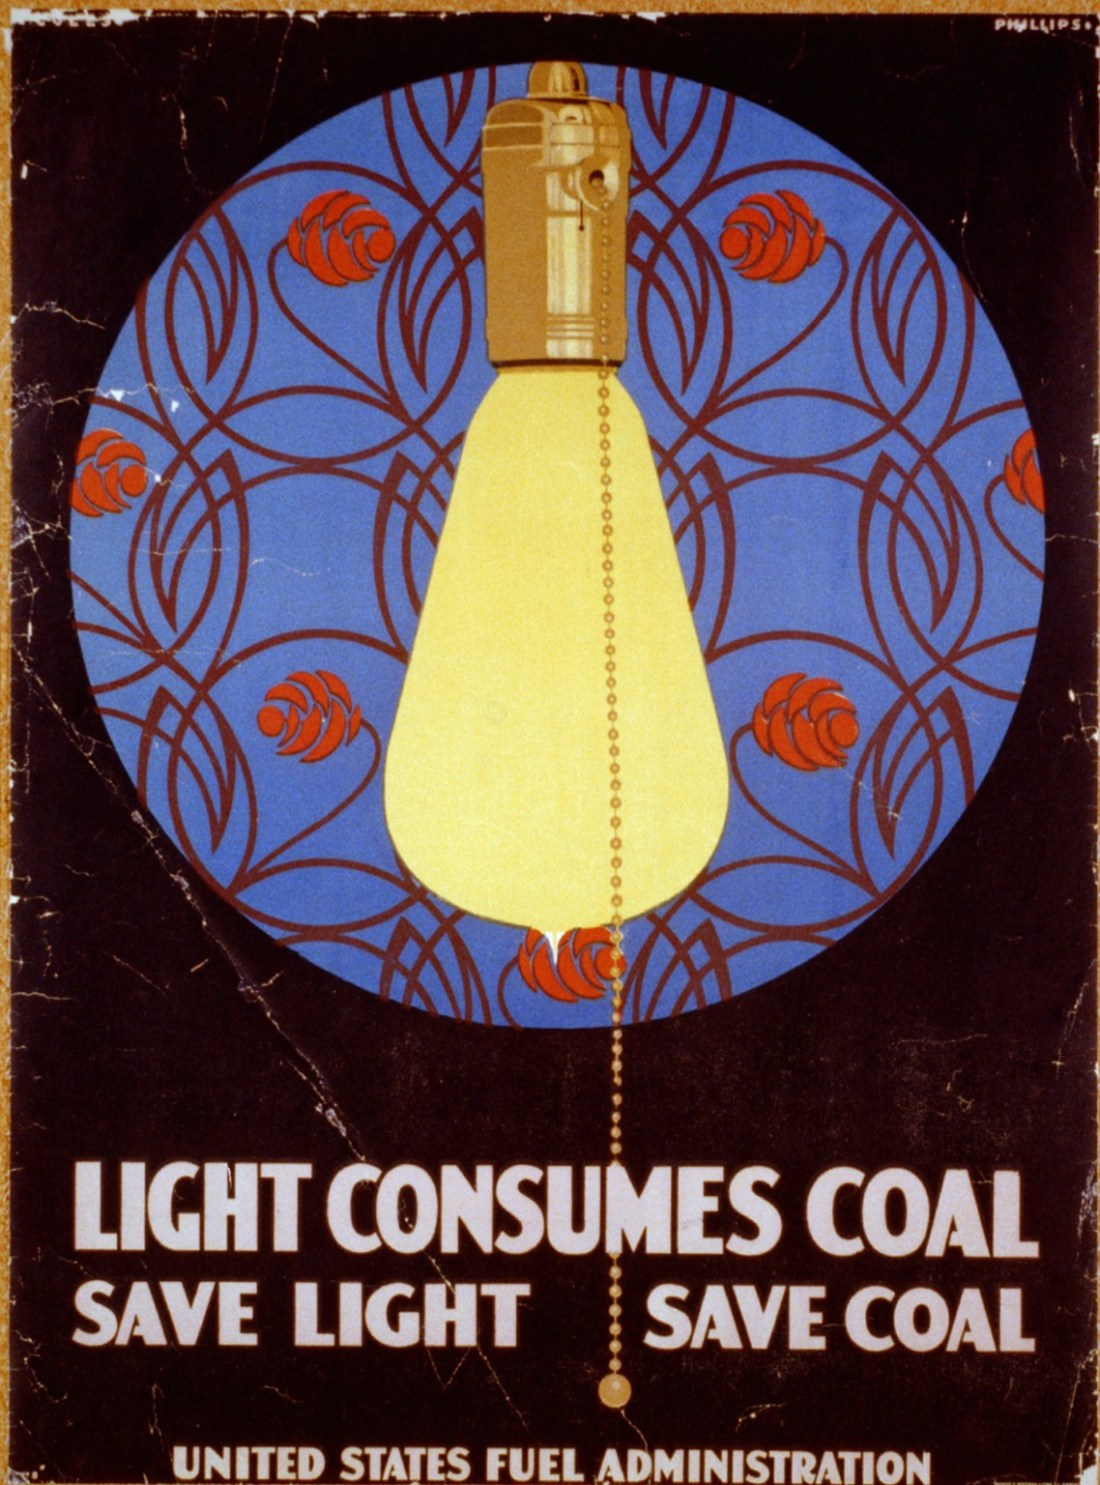 Light consumes coal - Save light, save coal. 1917.